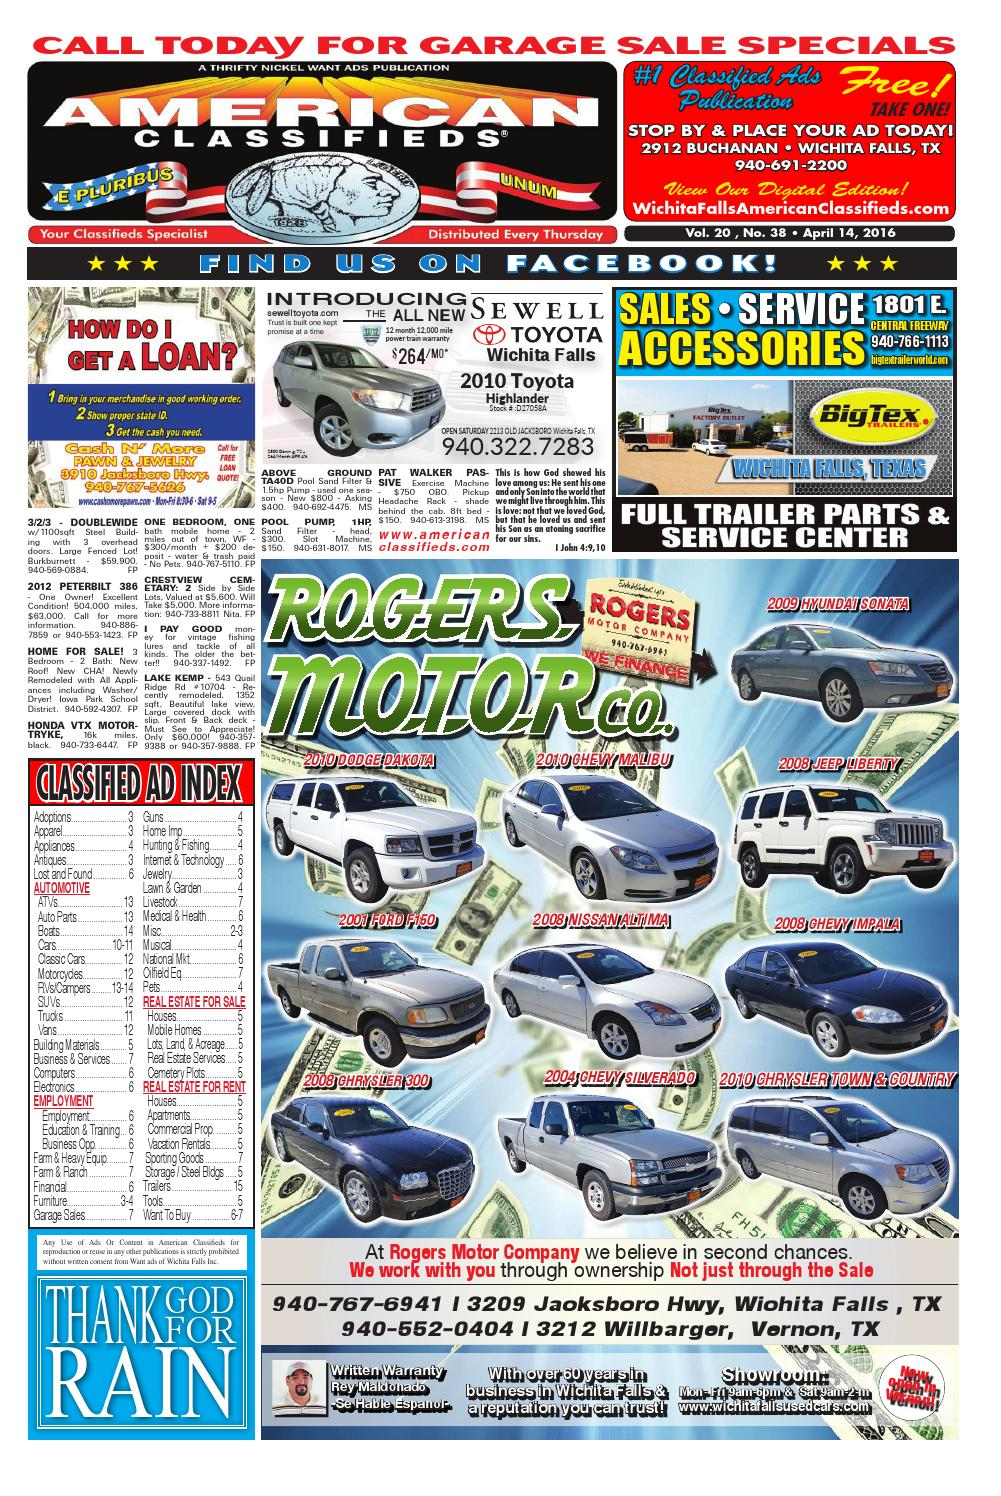 Digital edition 4 14 16 by wichita falls american classifieds issuu fandeluxe Images